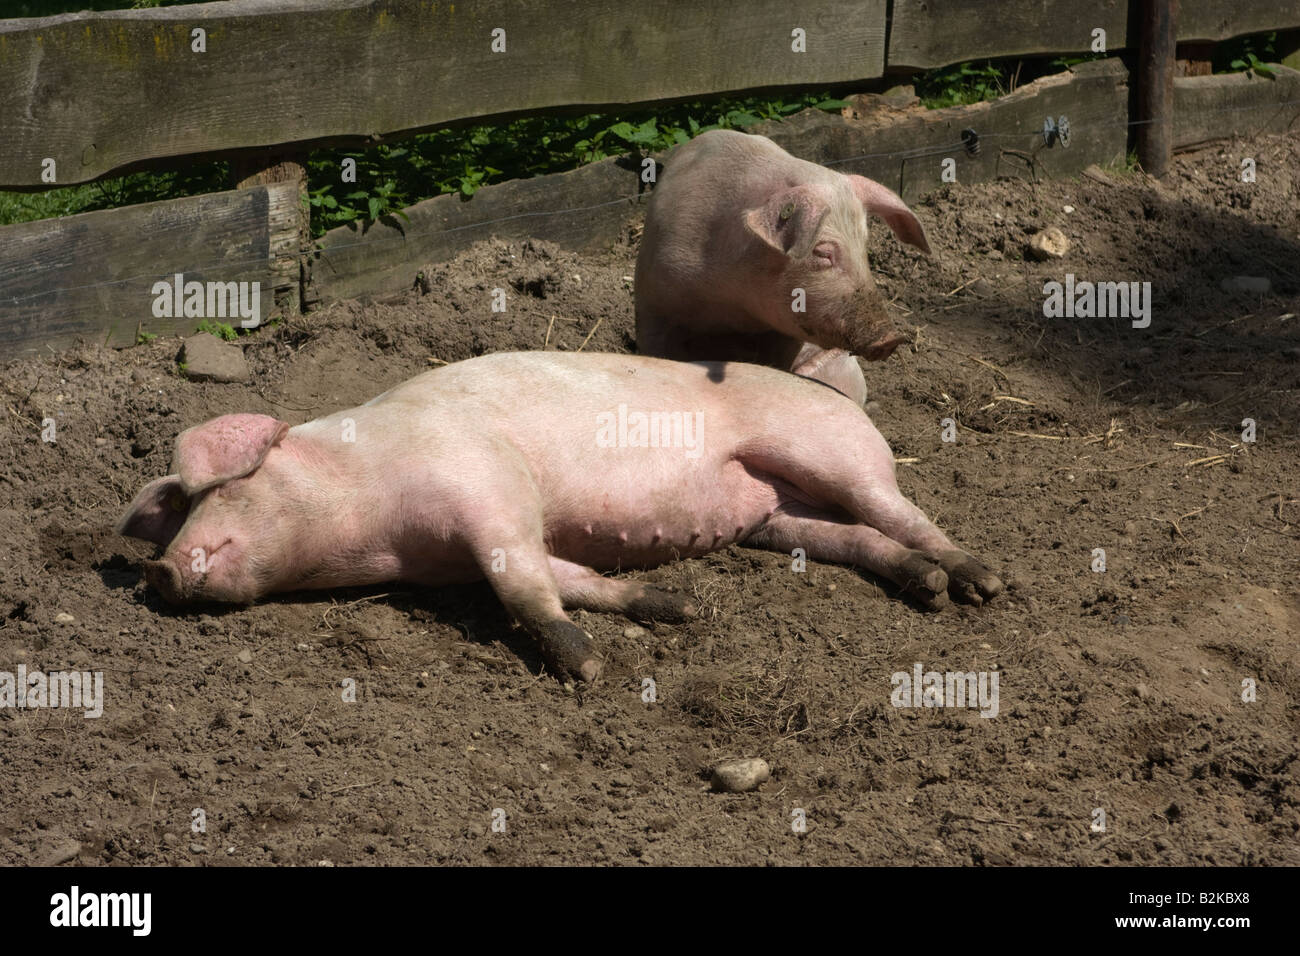 Freerange pigs sleeping in the mud A real hog s heaven. July 2008 - Stock Image